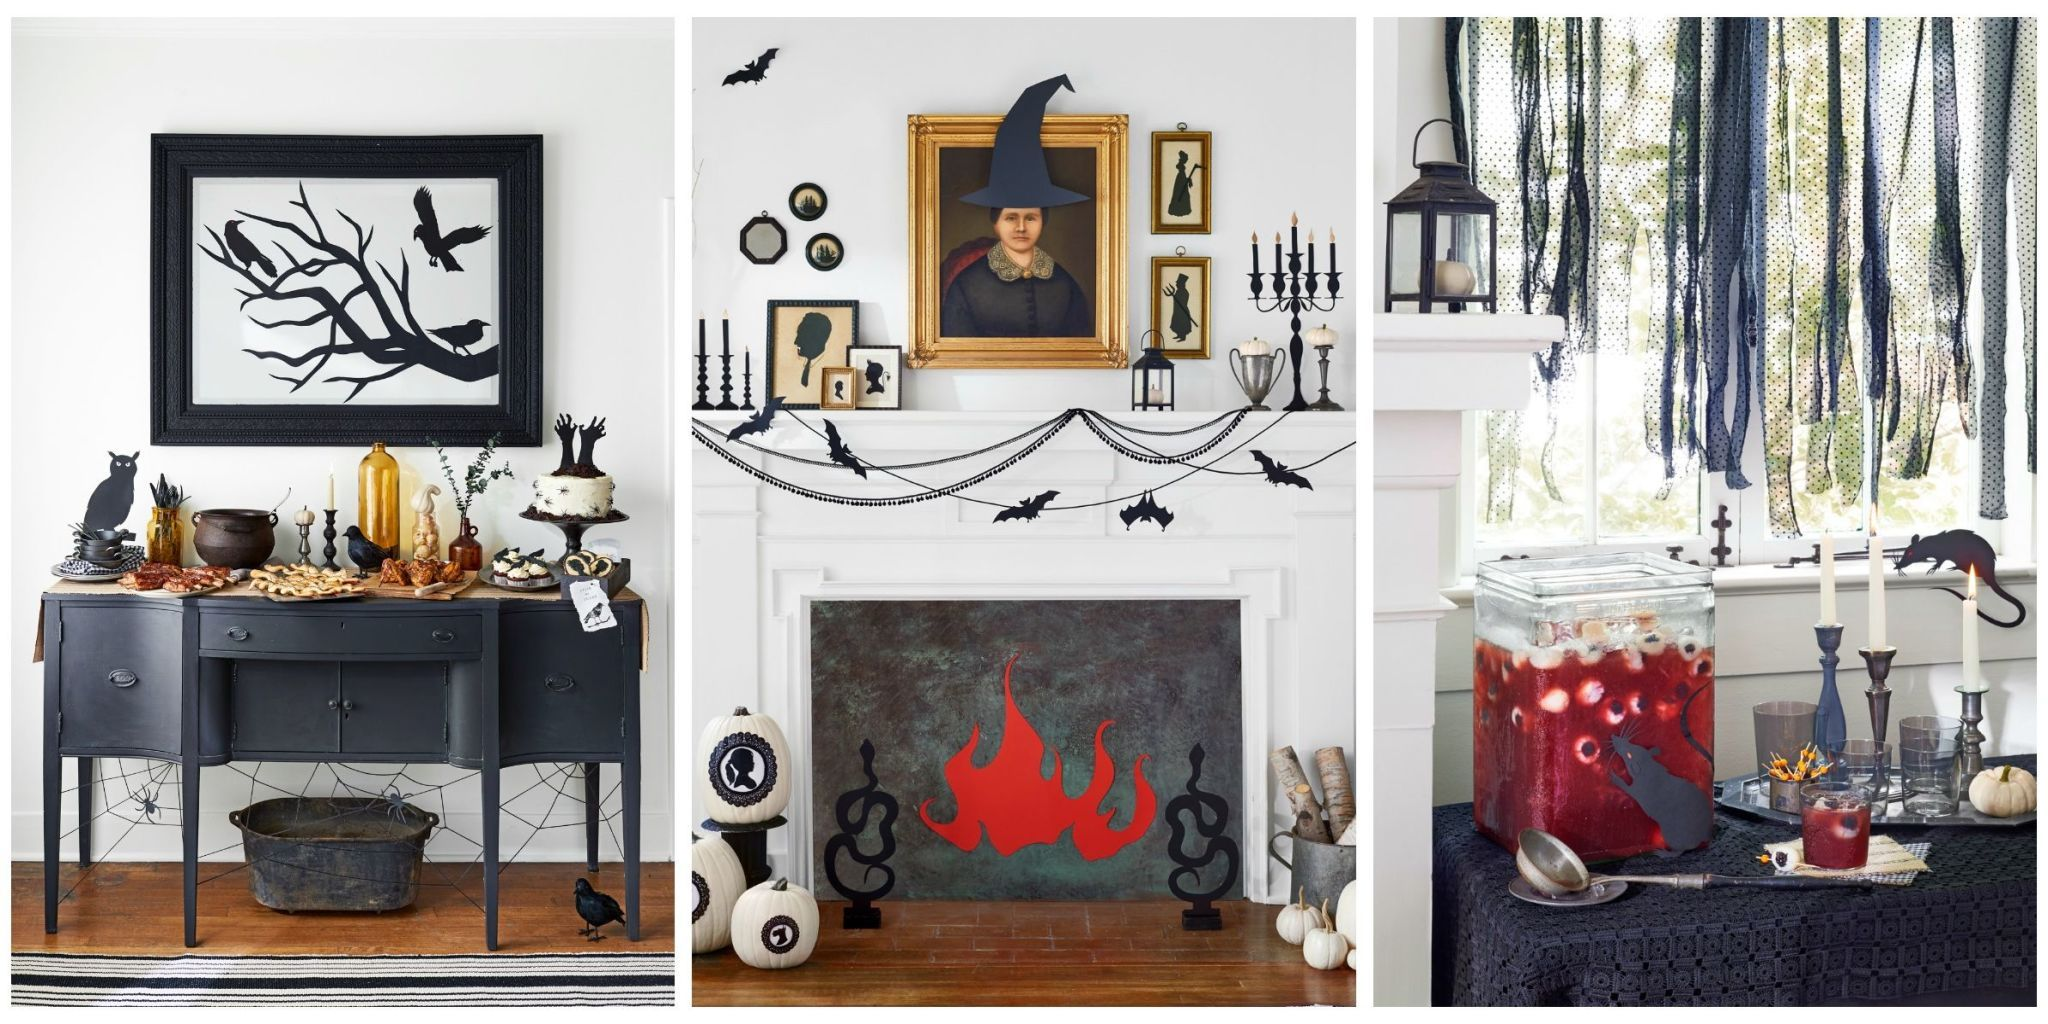 ... And Wickedly Good Recipes, Then Get Ready To Throw A High Profile  Halloween Party That Gives You And Your Guests The Perfect Excuse To Cut  Loose. Idea